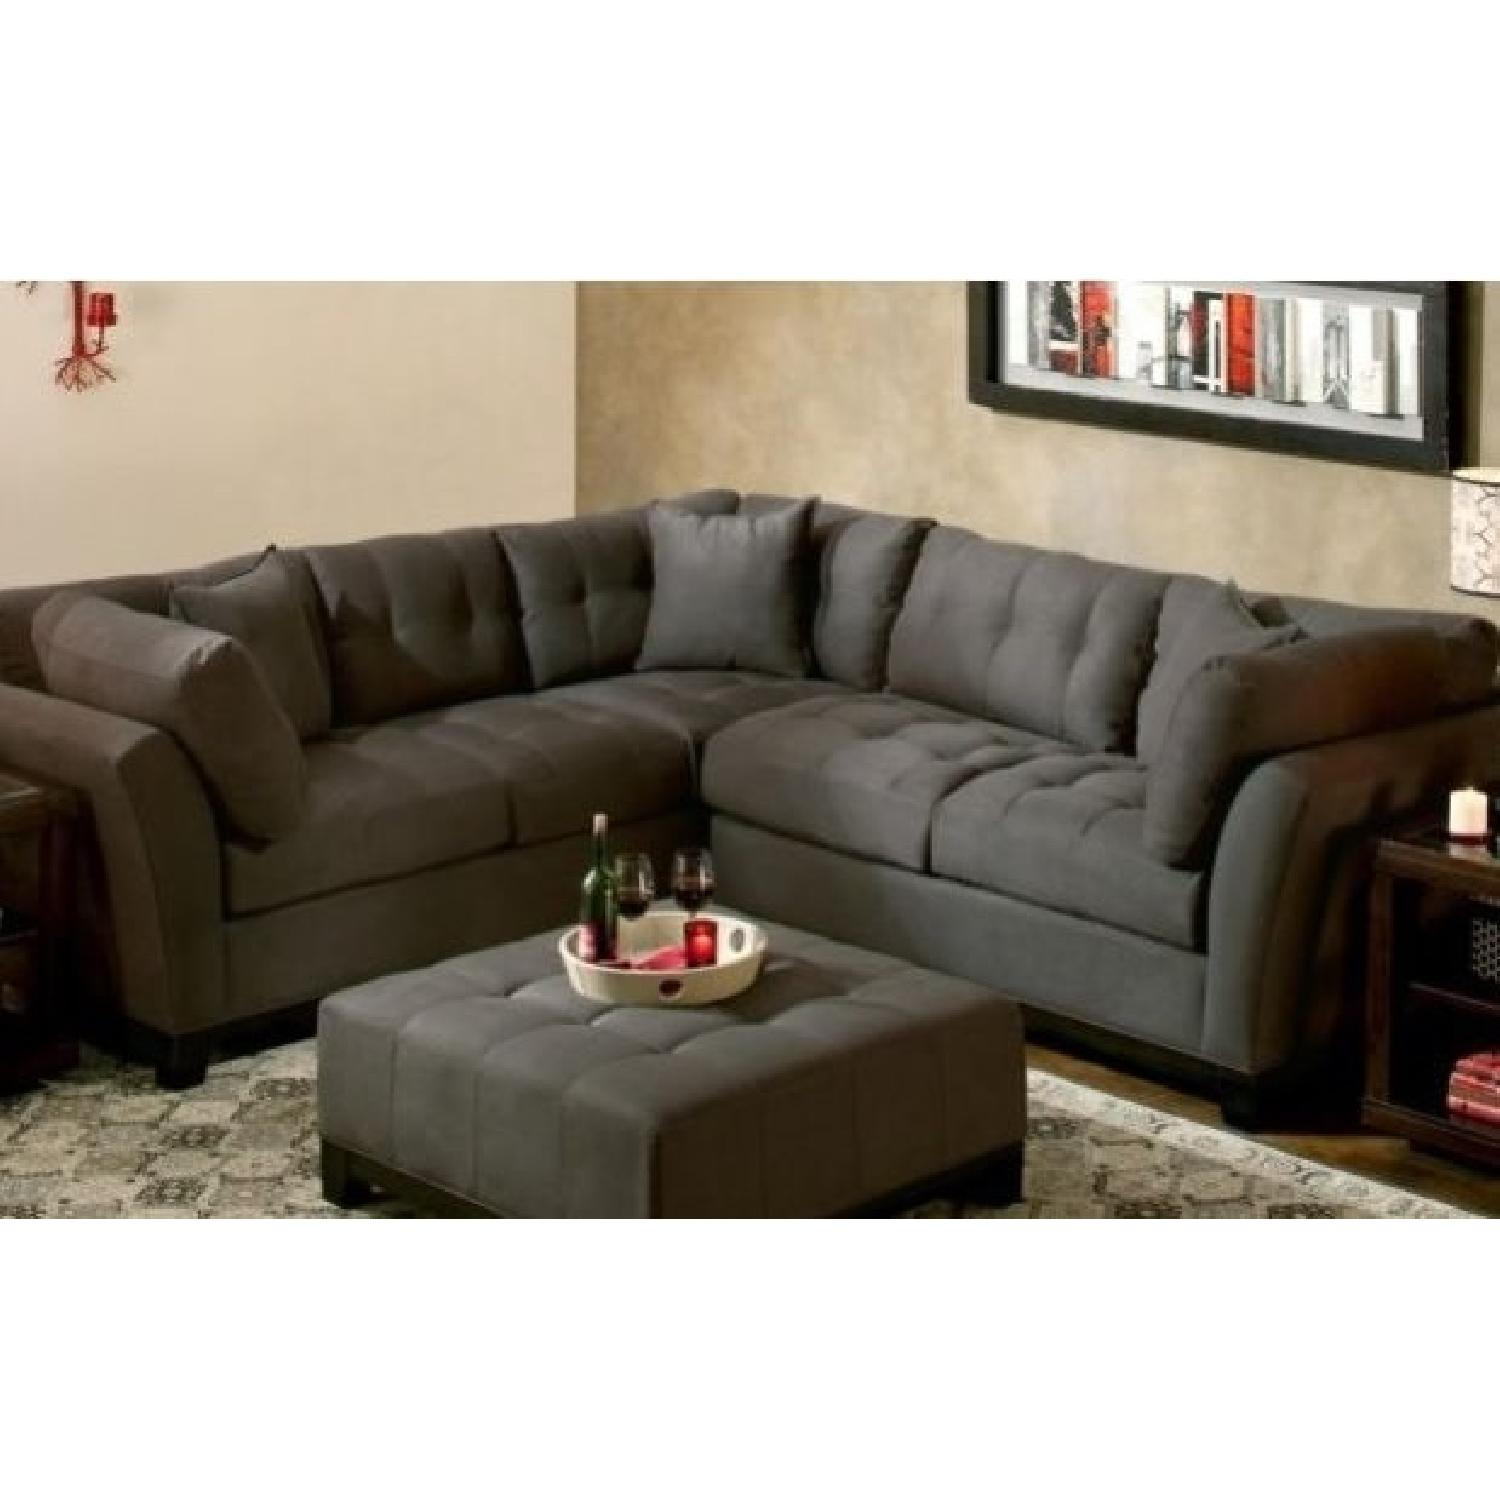 cindy crawford sofa quality grey modern living room raymour and flanigan 2 piece sectional aptdeco